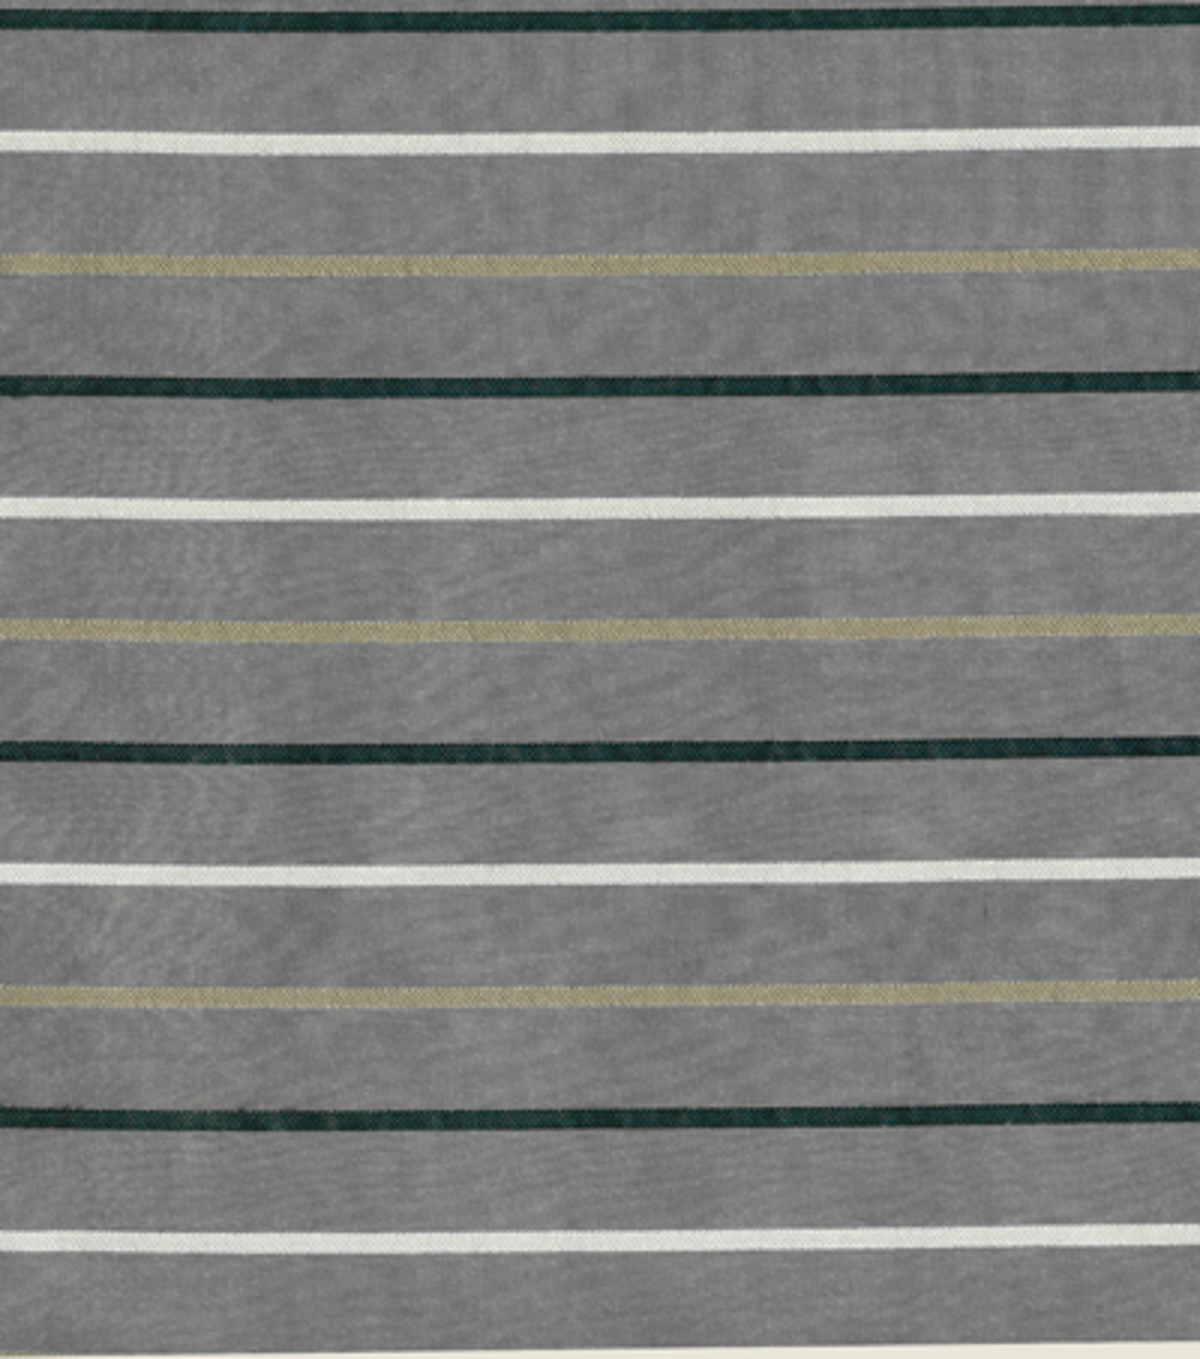 Home Decor 8\u0022x8\u0022 Fabric Swatch-Richloom Studio Modem Pebble